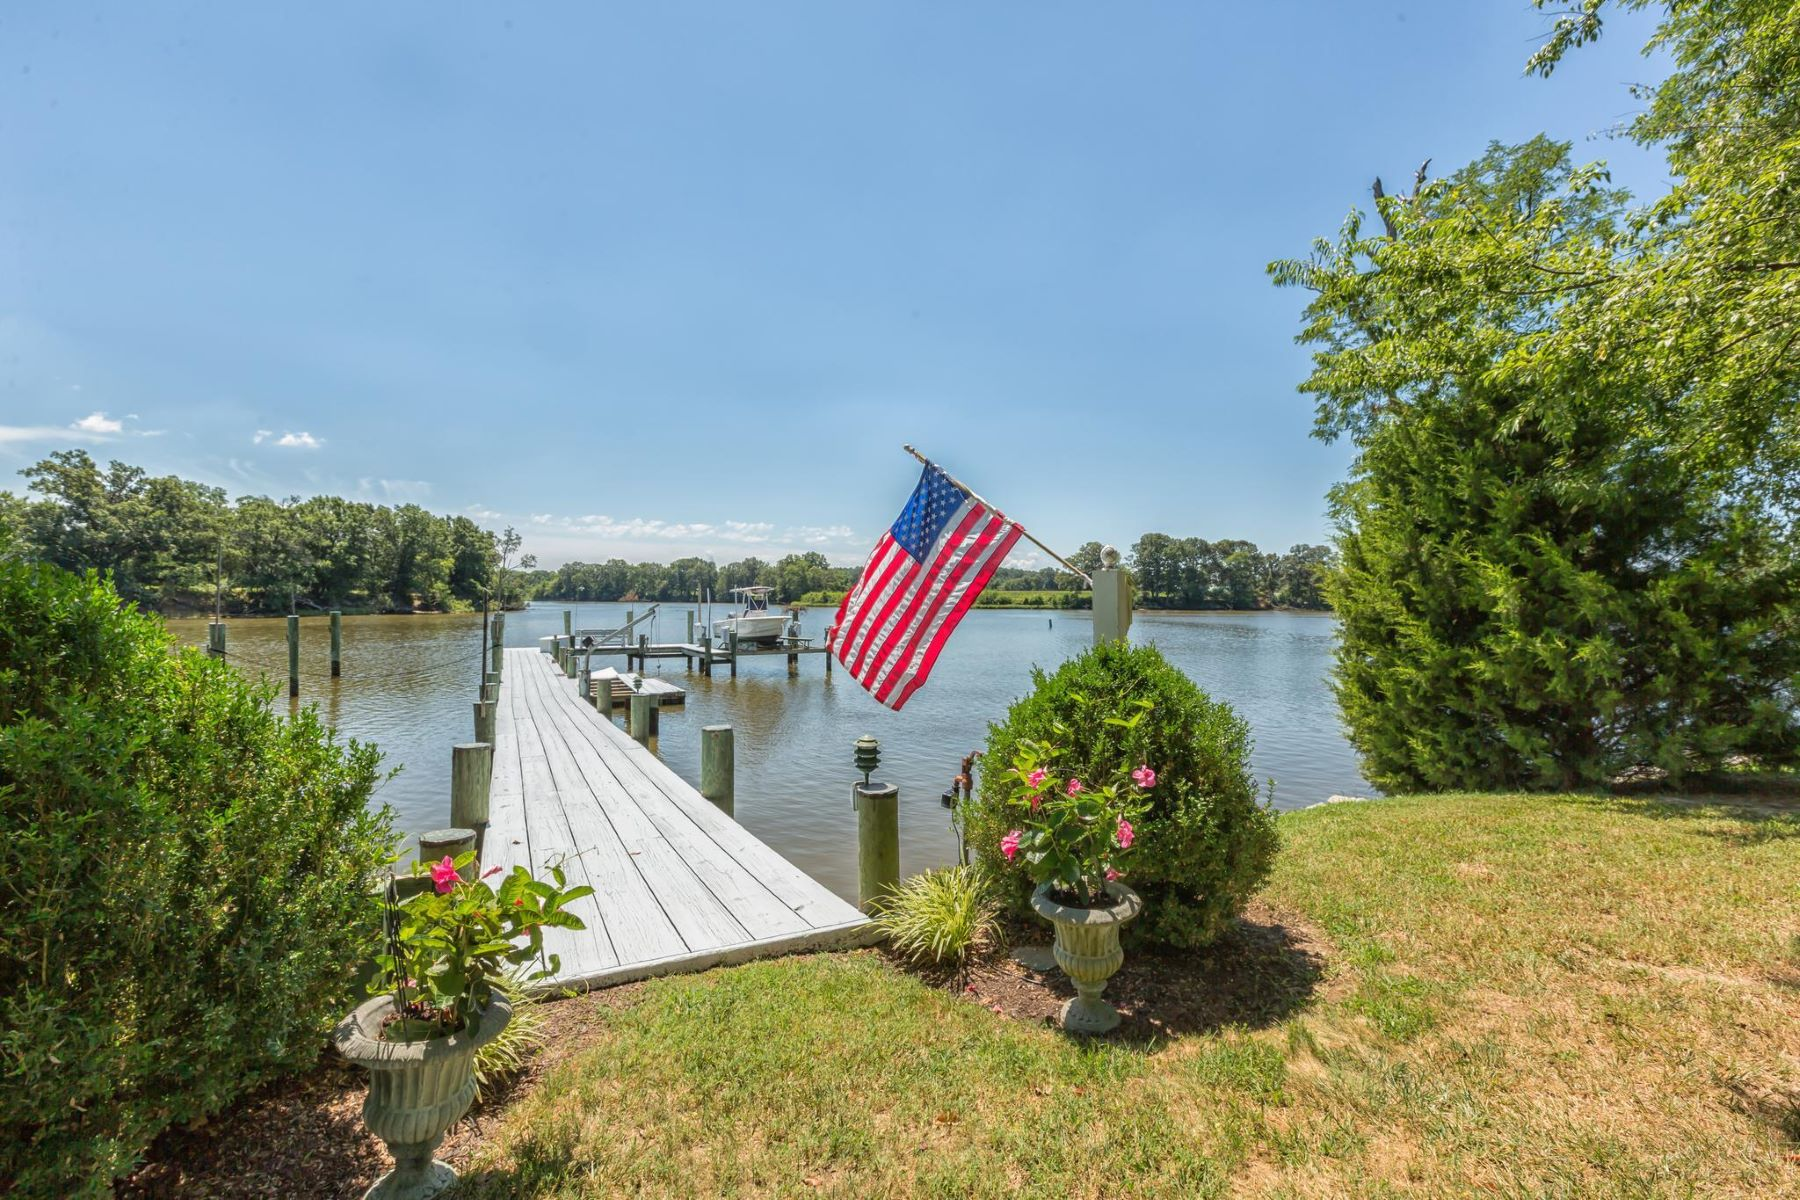 Additional photo for property listing at 28115 Southside Island Creek Rd 28115 Southside Island Creek Rd Trappe, Maryland 21673 United States